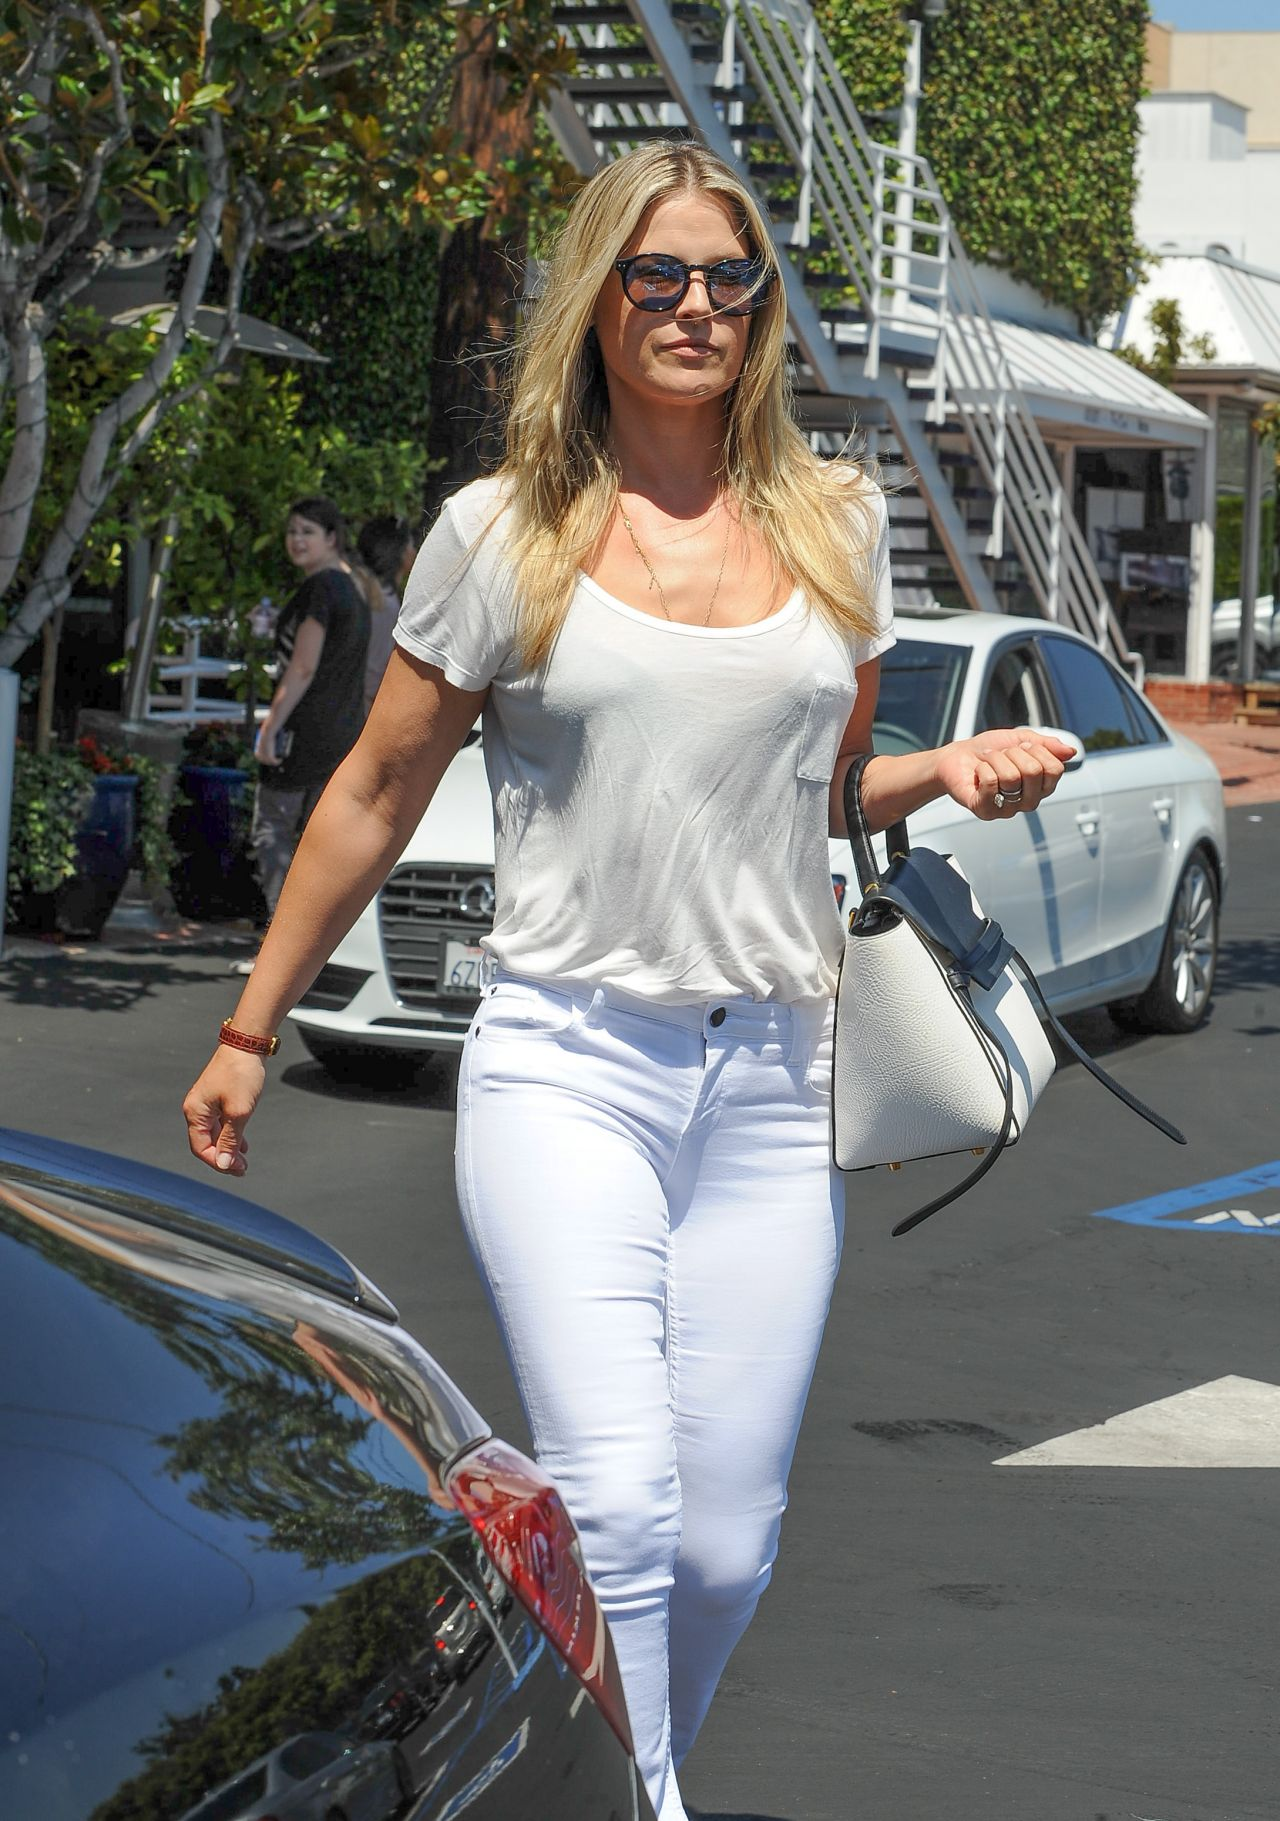 Ali Larter Latest Photos Celebmafia